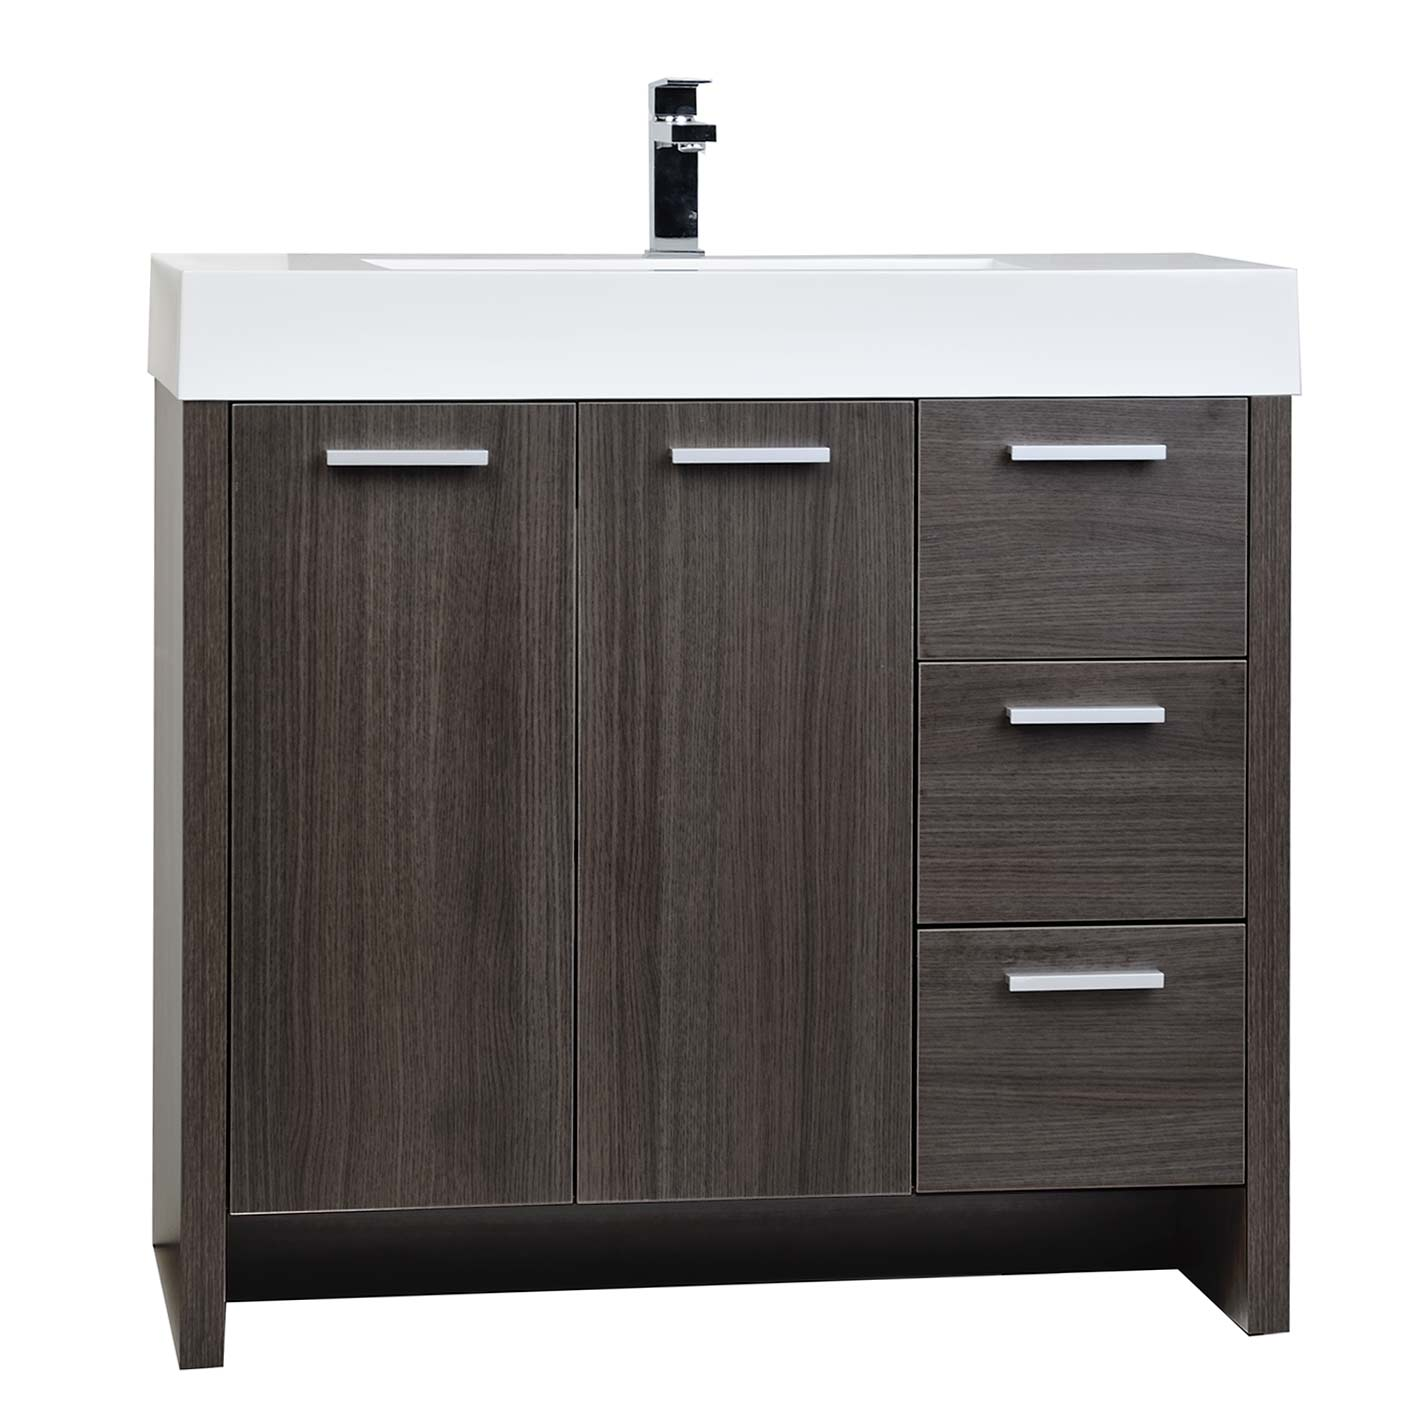 Buy 35 5 Modern Bathroom Vanity Grey Oak Finish Tn Ly900